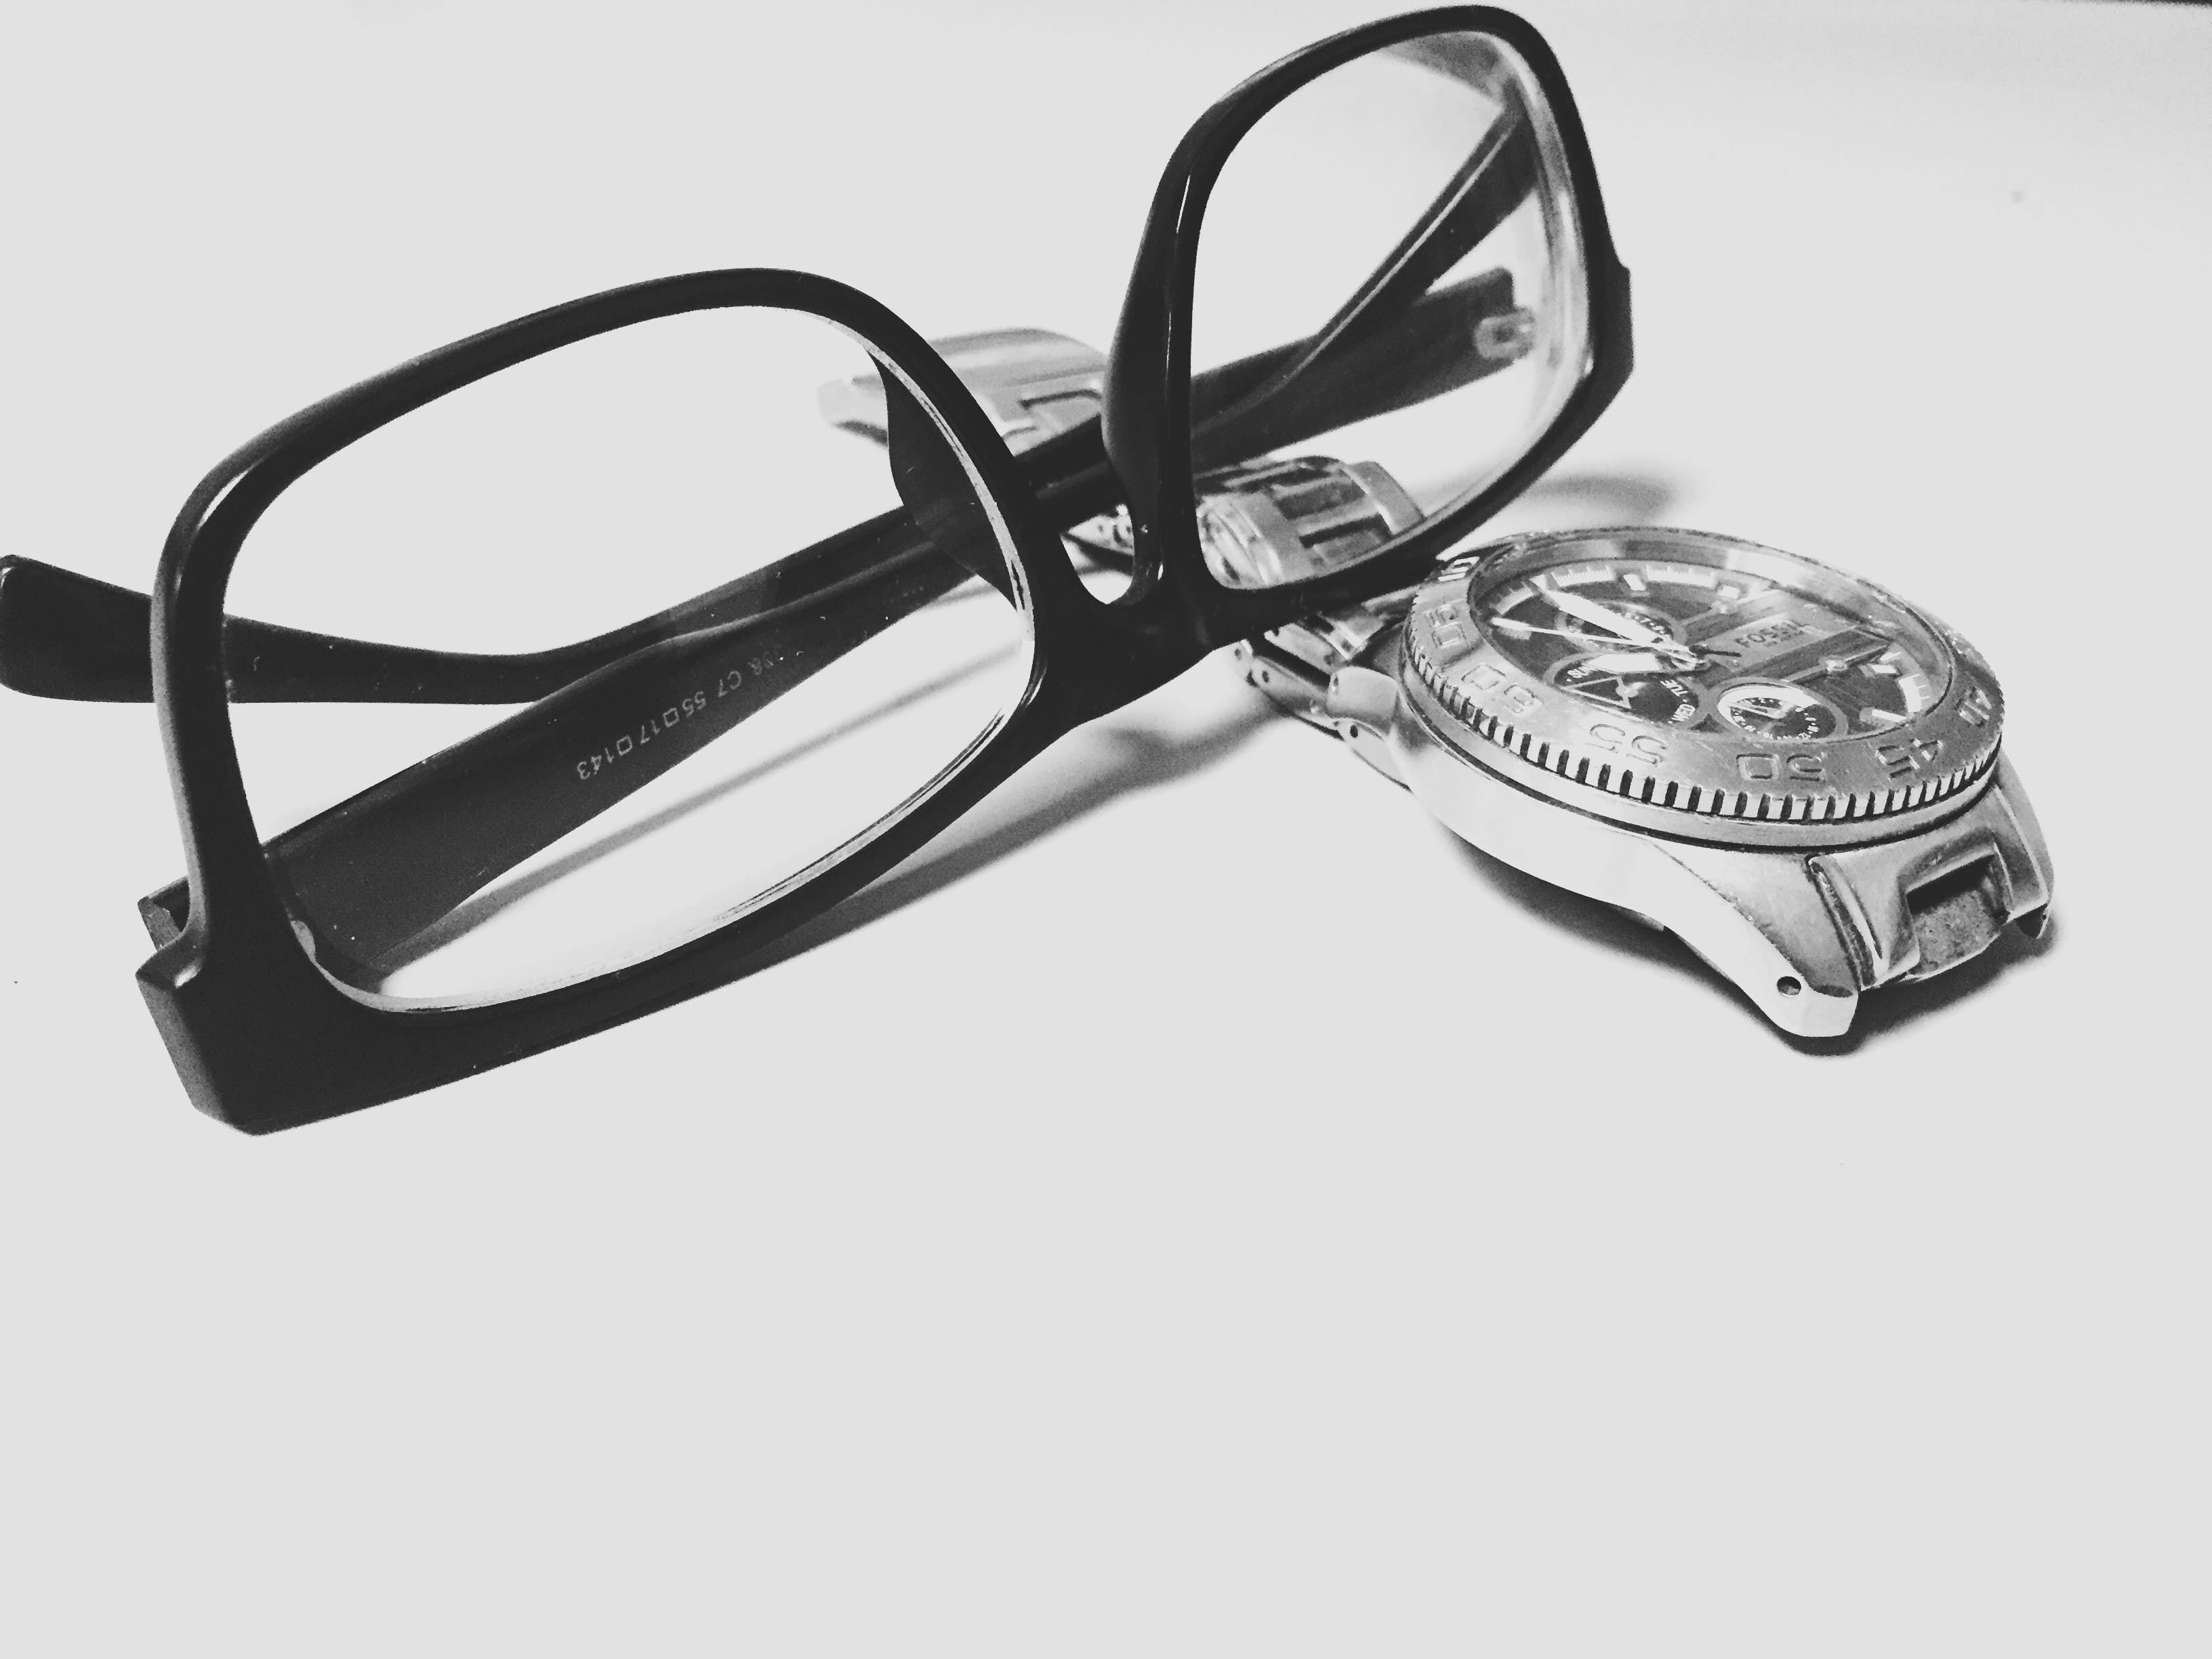 Grayscale Photography of Black Framed Eyeglasses on Watch